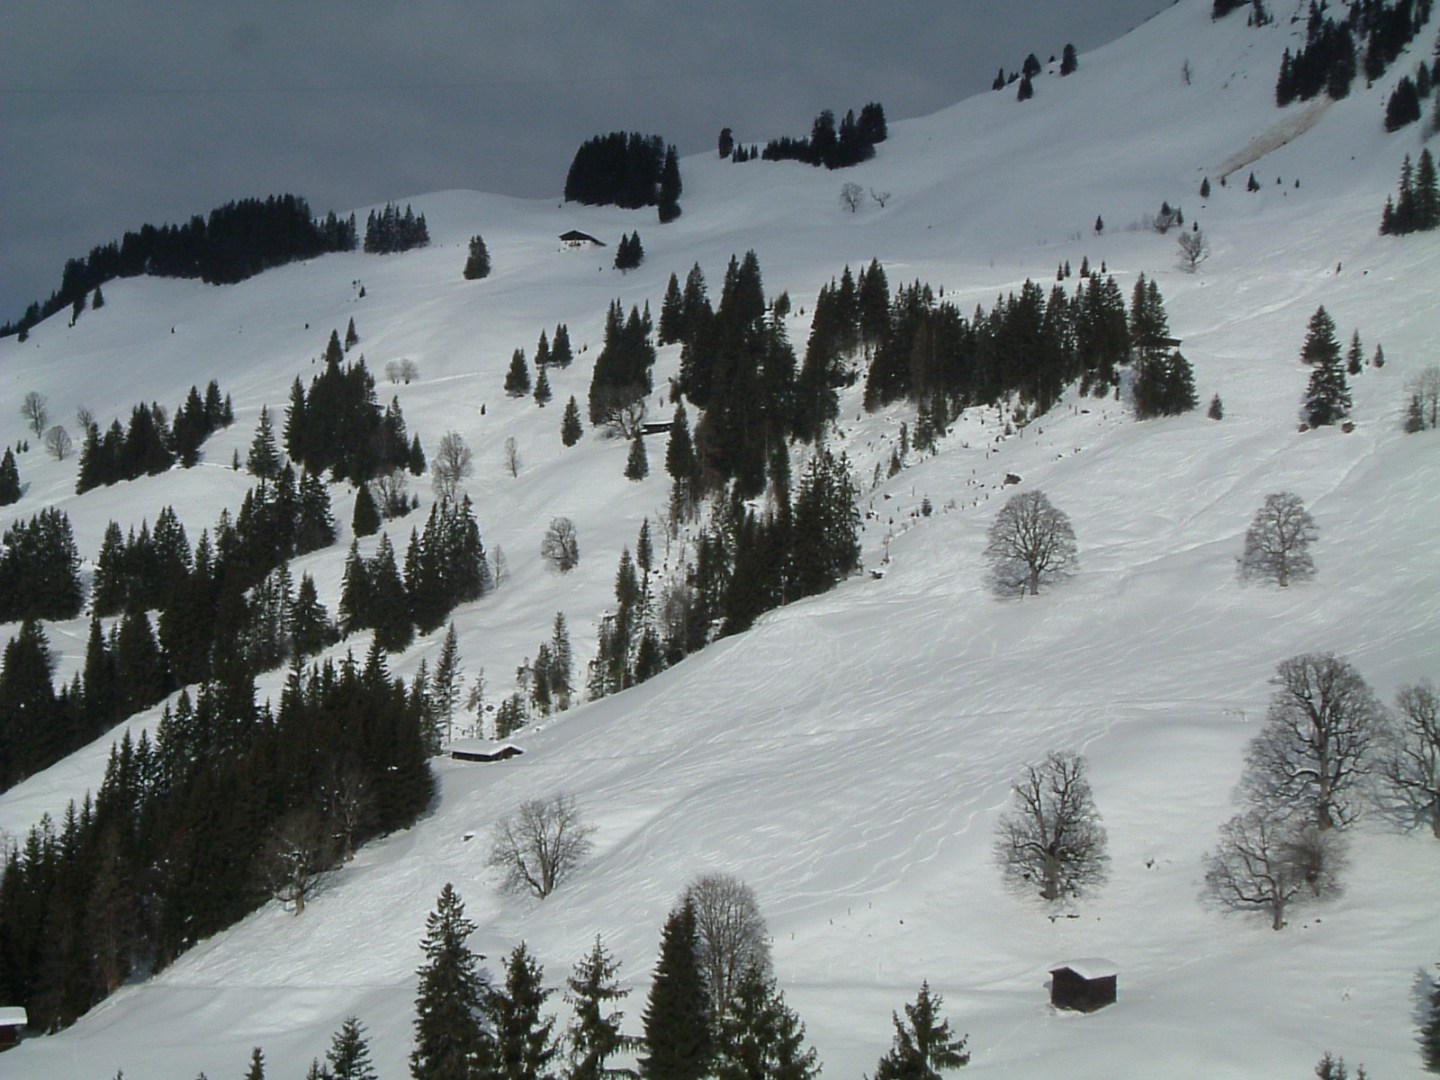 Skiing in Kitzbuhel – What I'd do differently